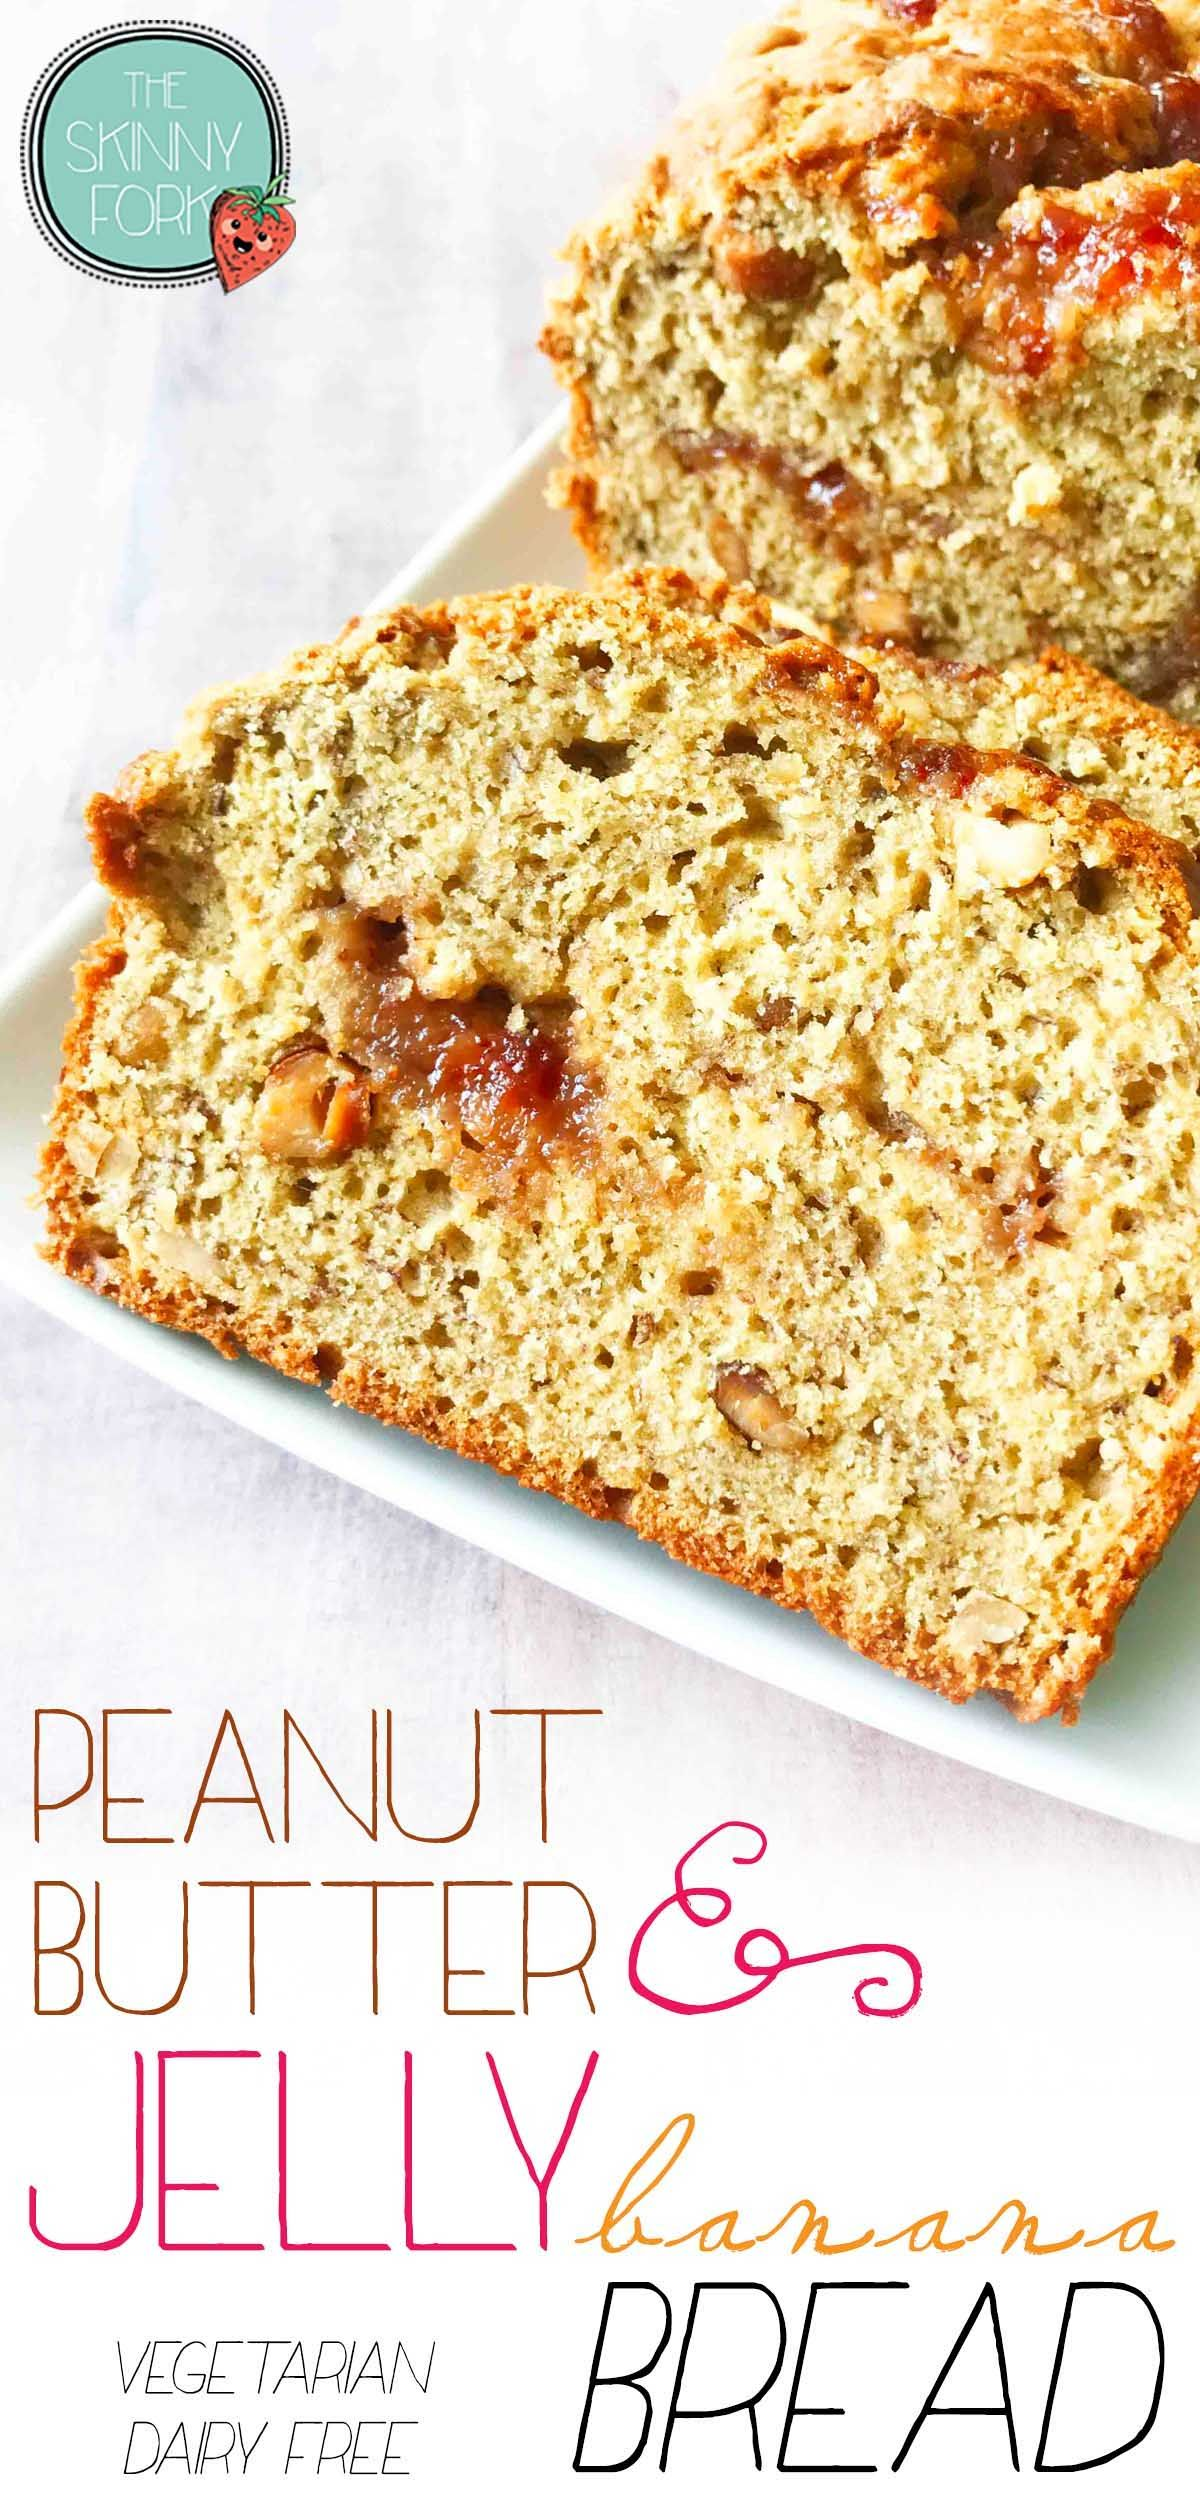 PBJ Banana Bread — The Skinny Fork | Recipe in 2020 ...